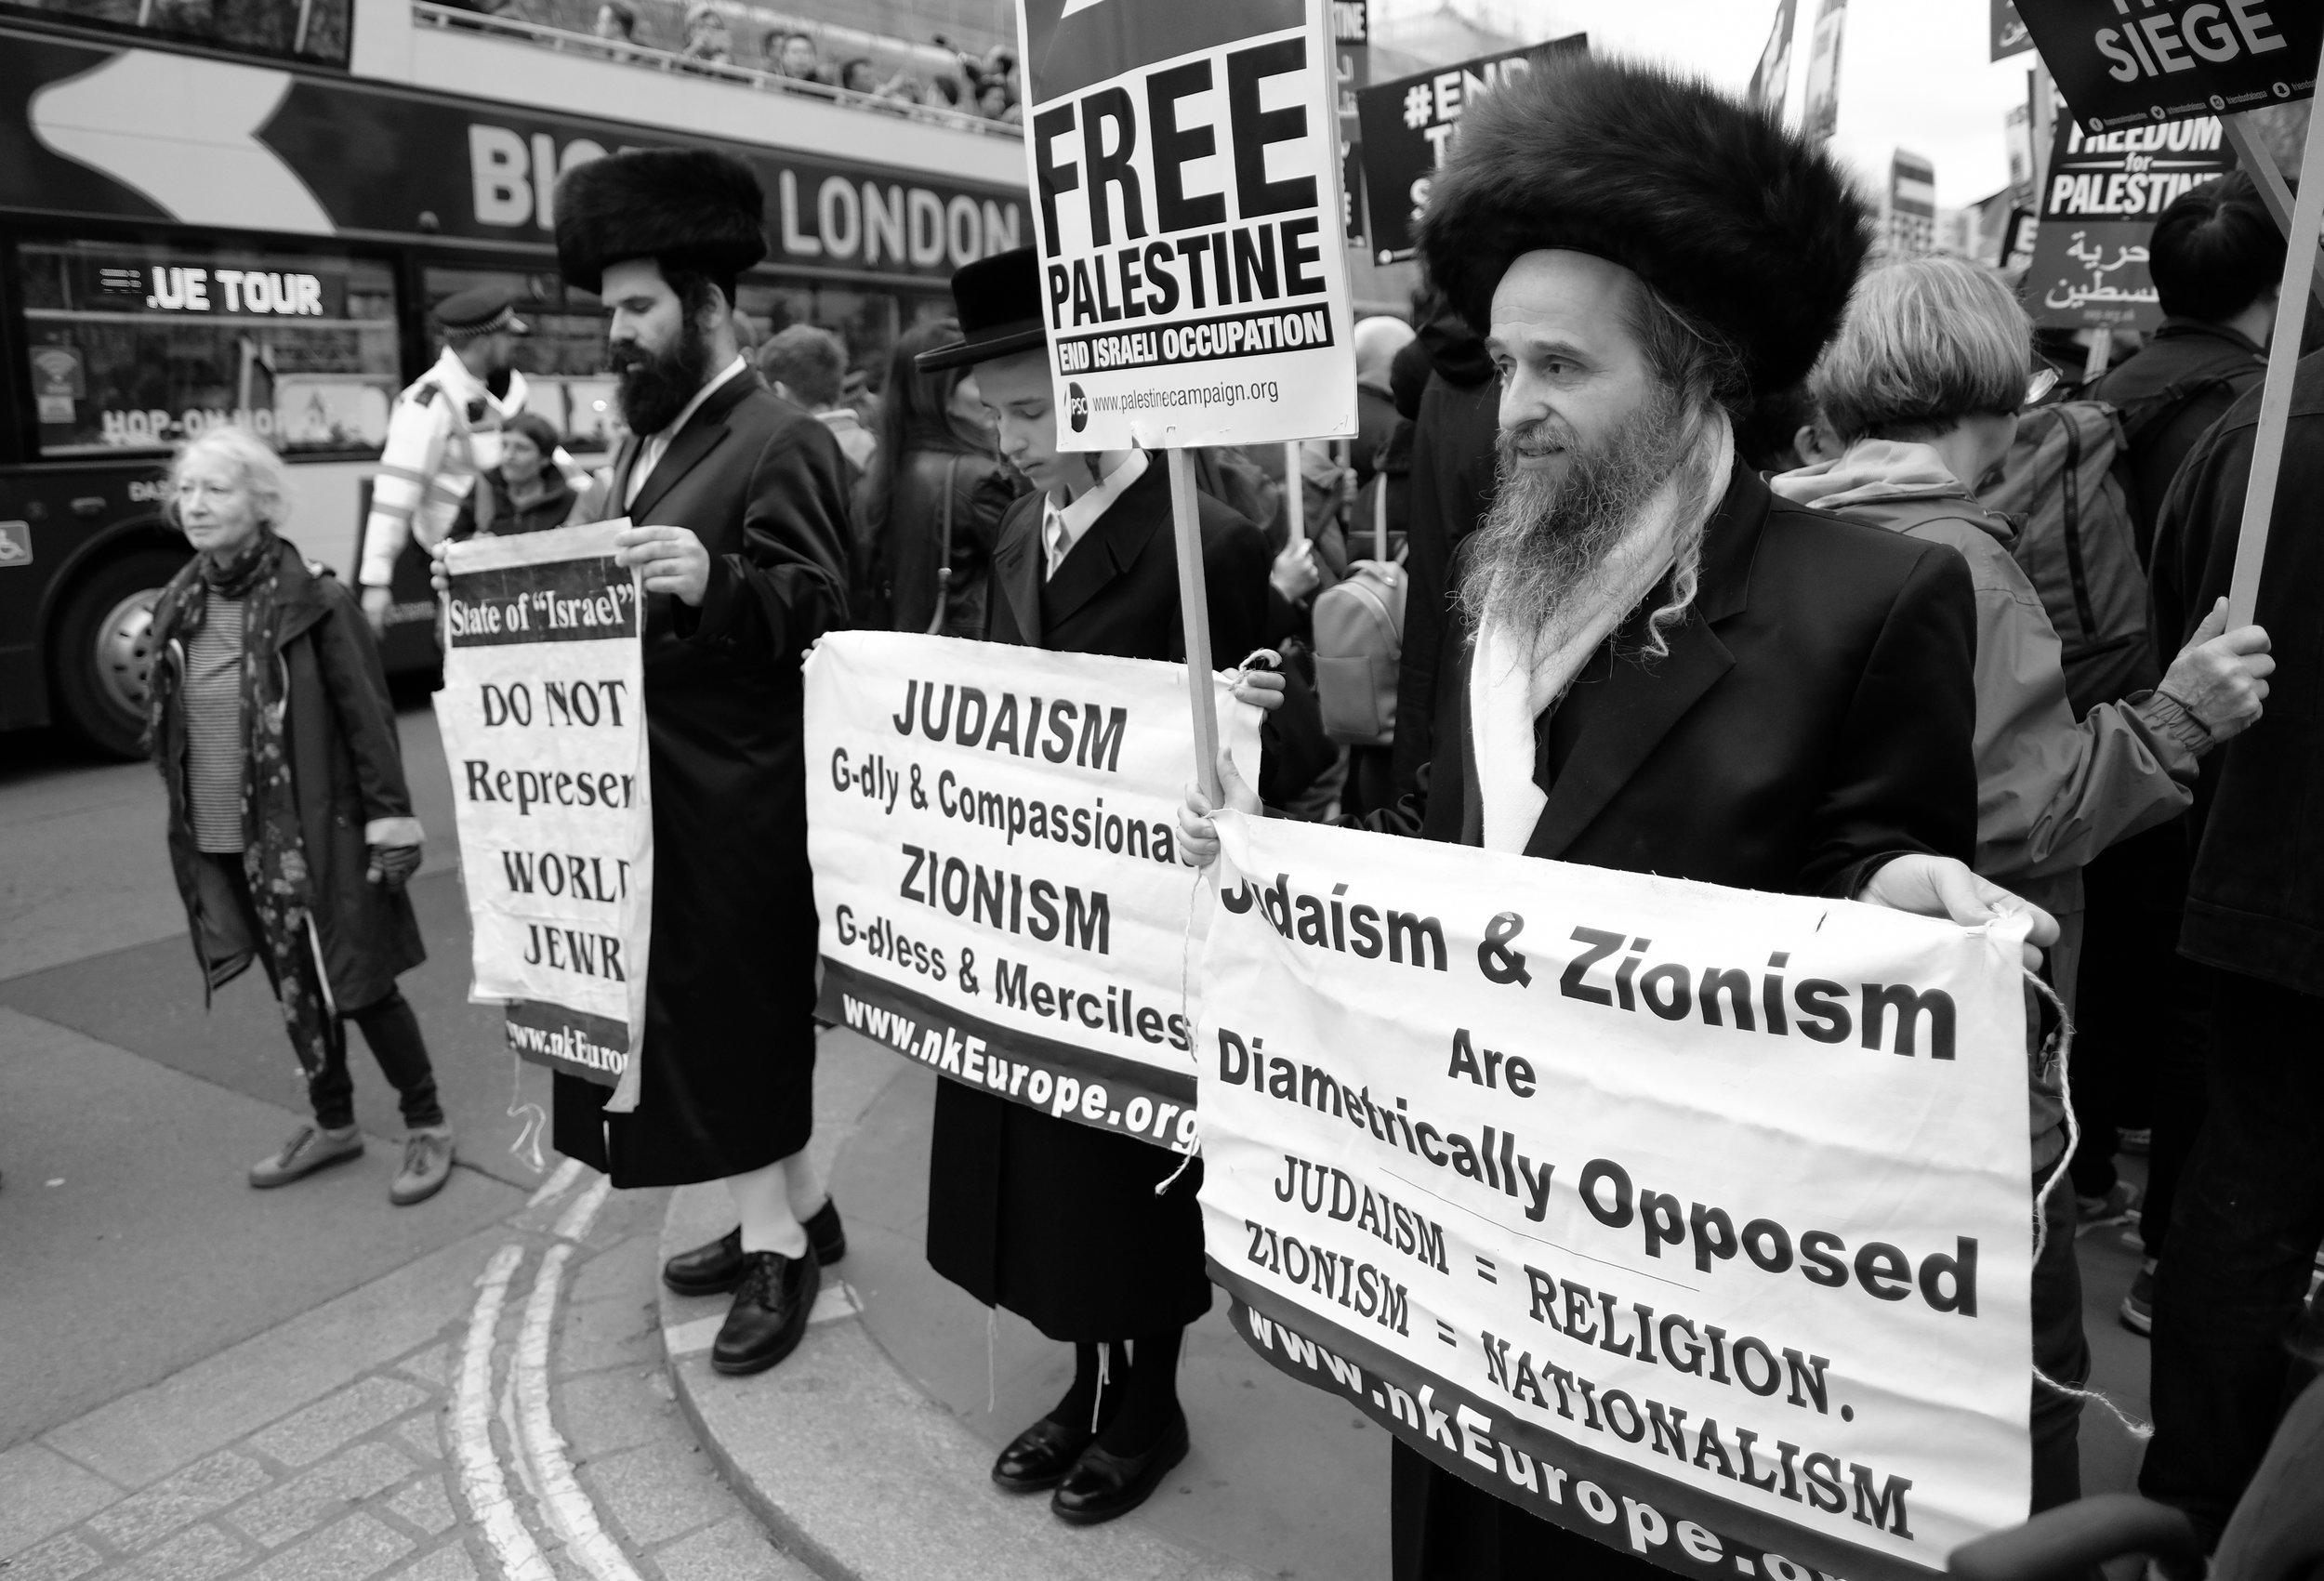 Judaism_and_Zionism_are_diametrically_opposed_(40475236515).jpg